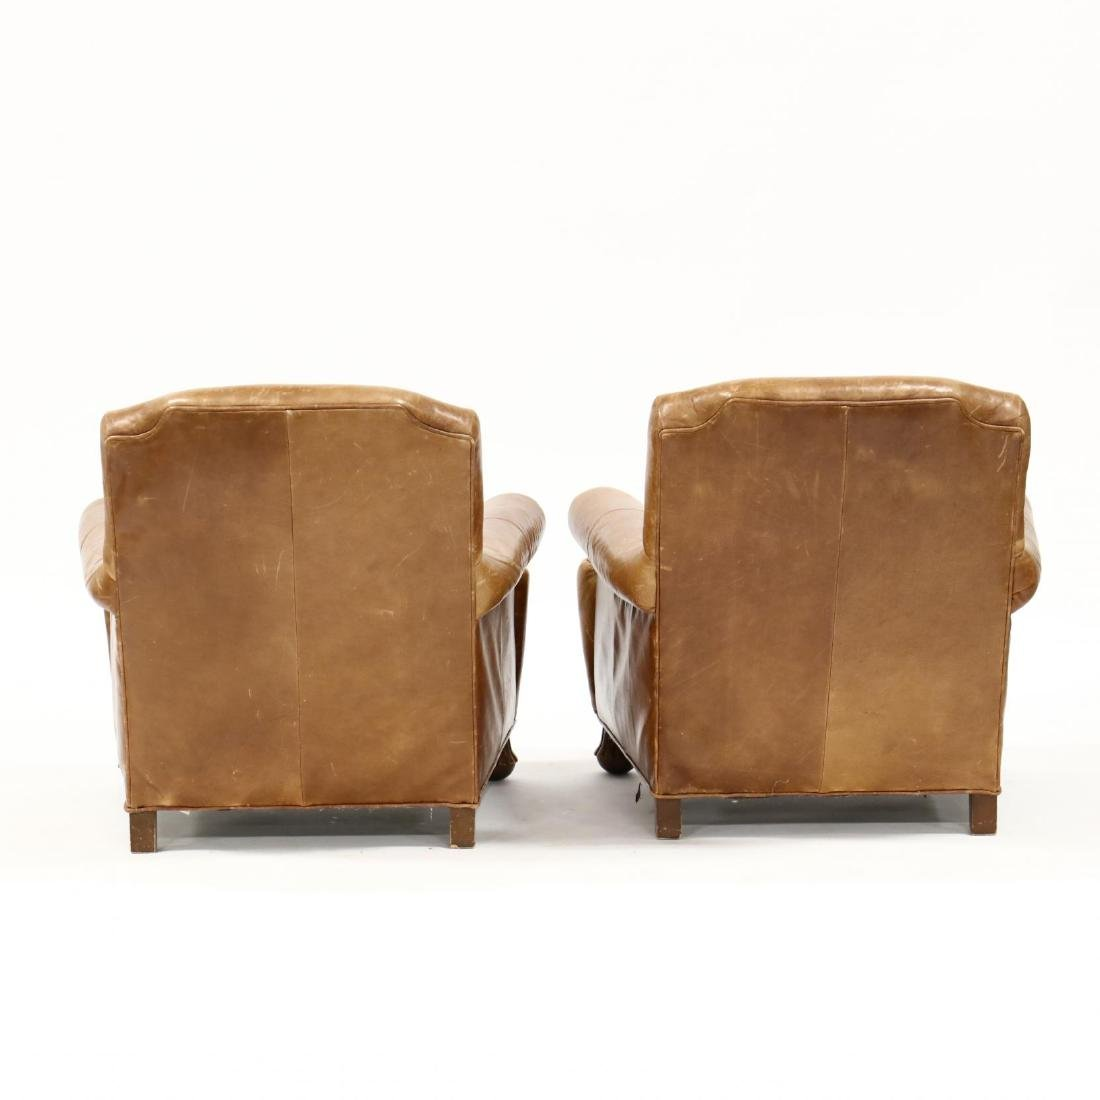 ABC Carpet & Home, Pair of Leather Club Chairs and - 3